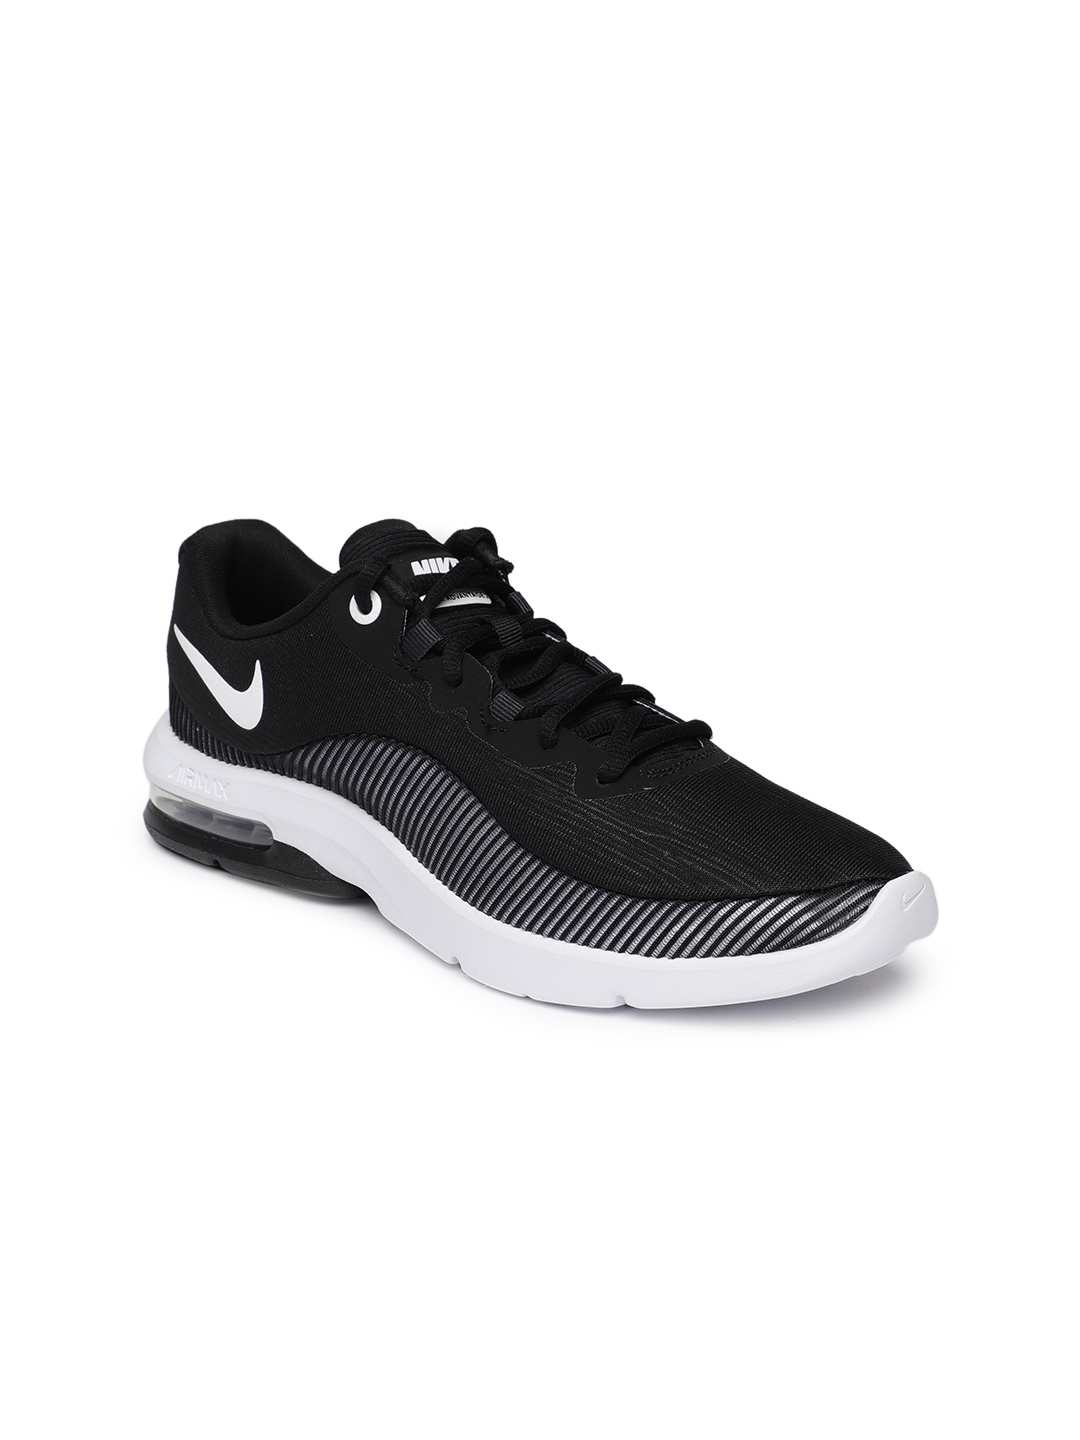 802c144101 Buy Nike Women Black Air Max Advantage 2 Sneakers - Casual Shoes for ...